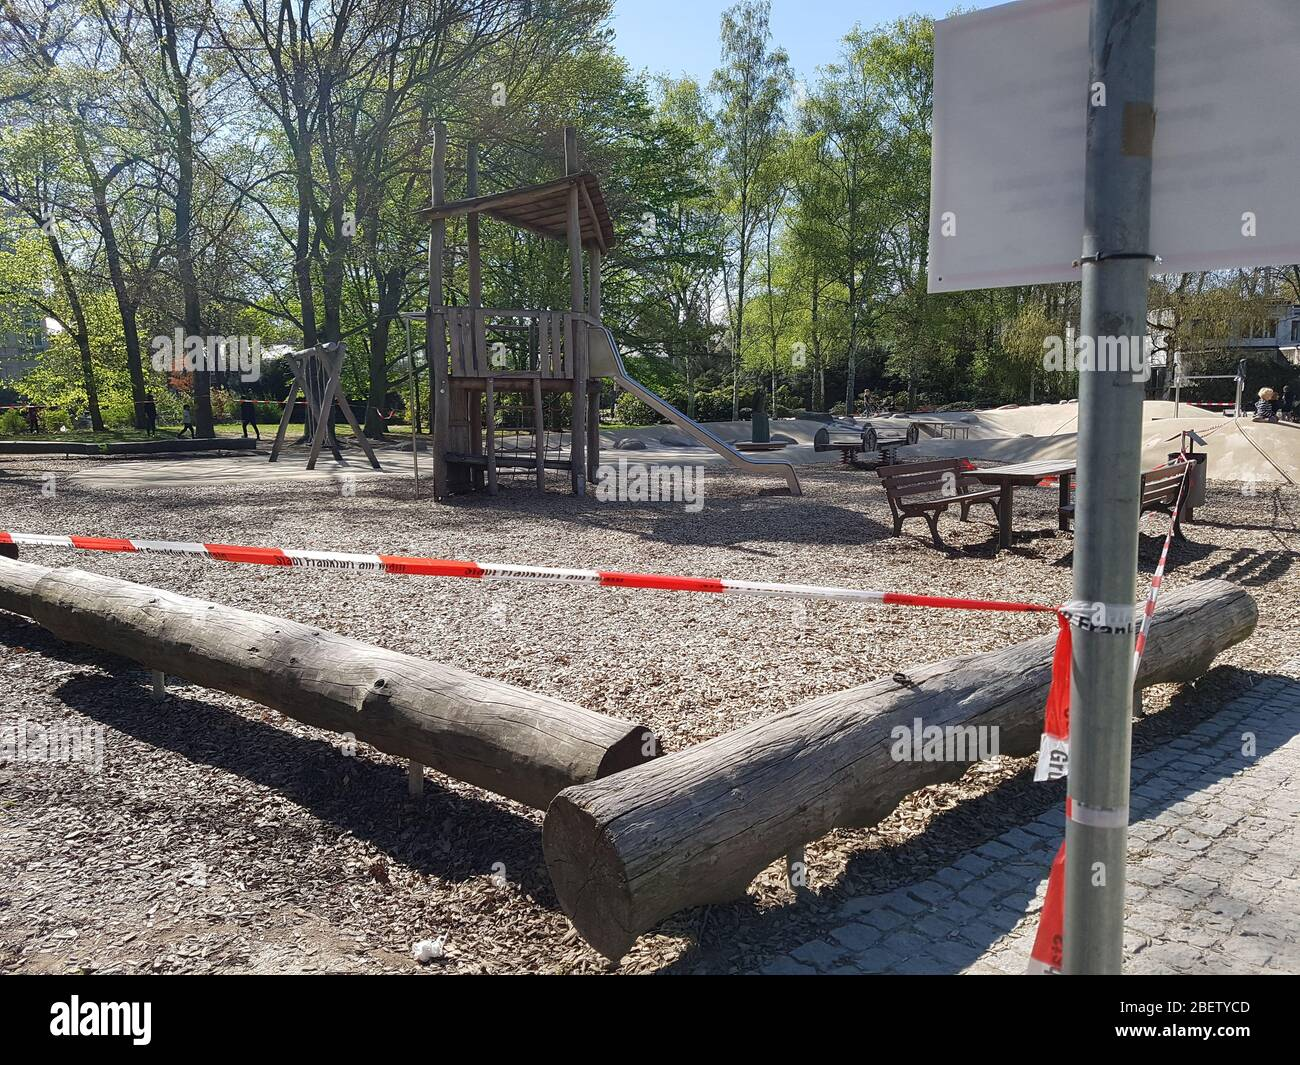 Empty Abandoned Children Playground Or Play Field In Park Forest With Slide Closed With Police Barrier Tape Warning Sign Corona Virus Covid 19 Stock Photo Alamy